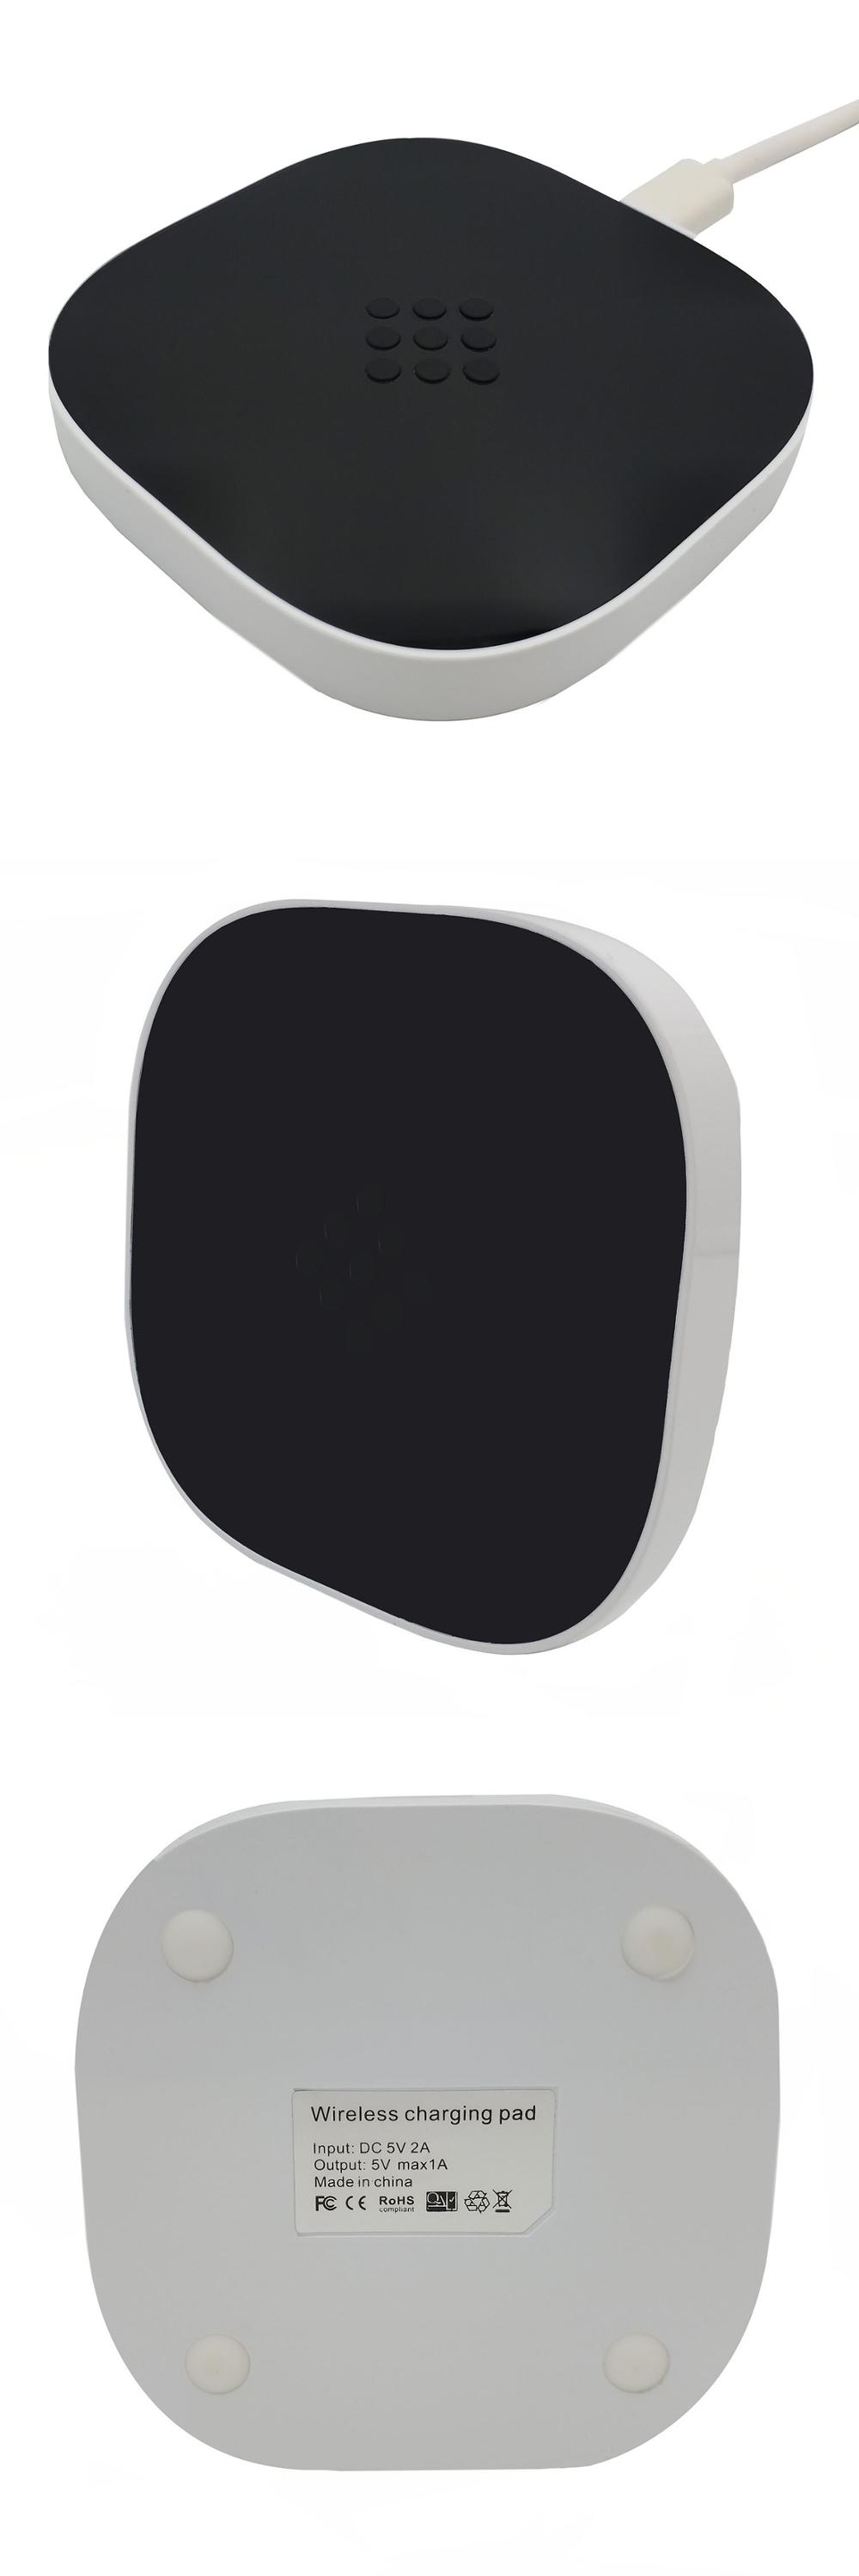 Qi Wireless Charger pad for iPhone8/8plus/x fast wireless charger for all Qi-enable devices